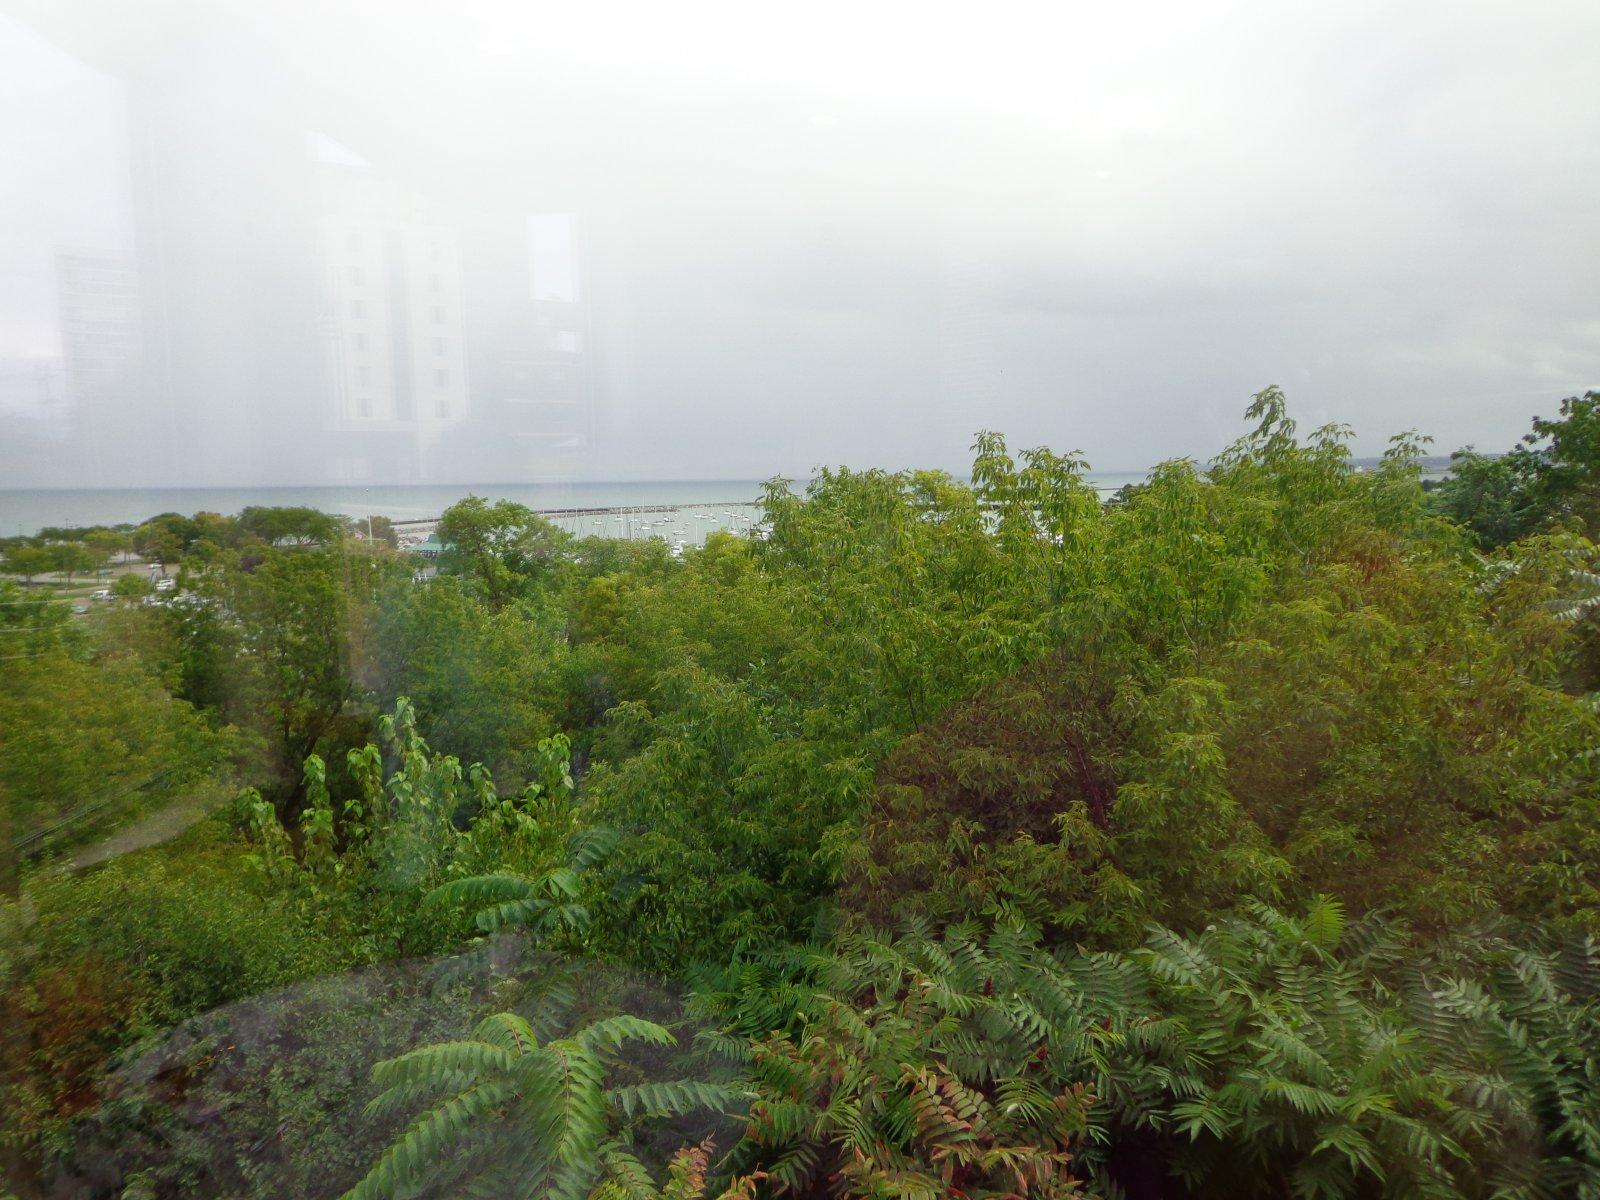 A view of the lake.